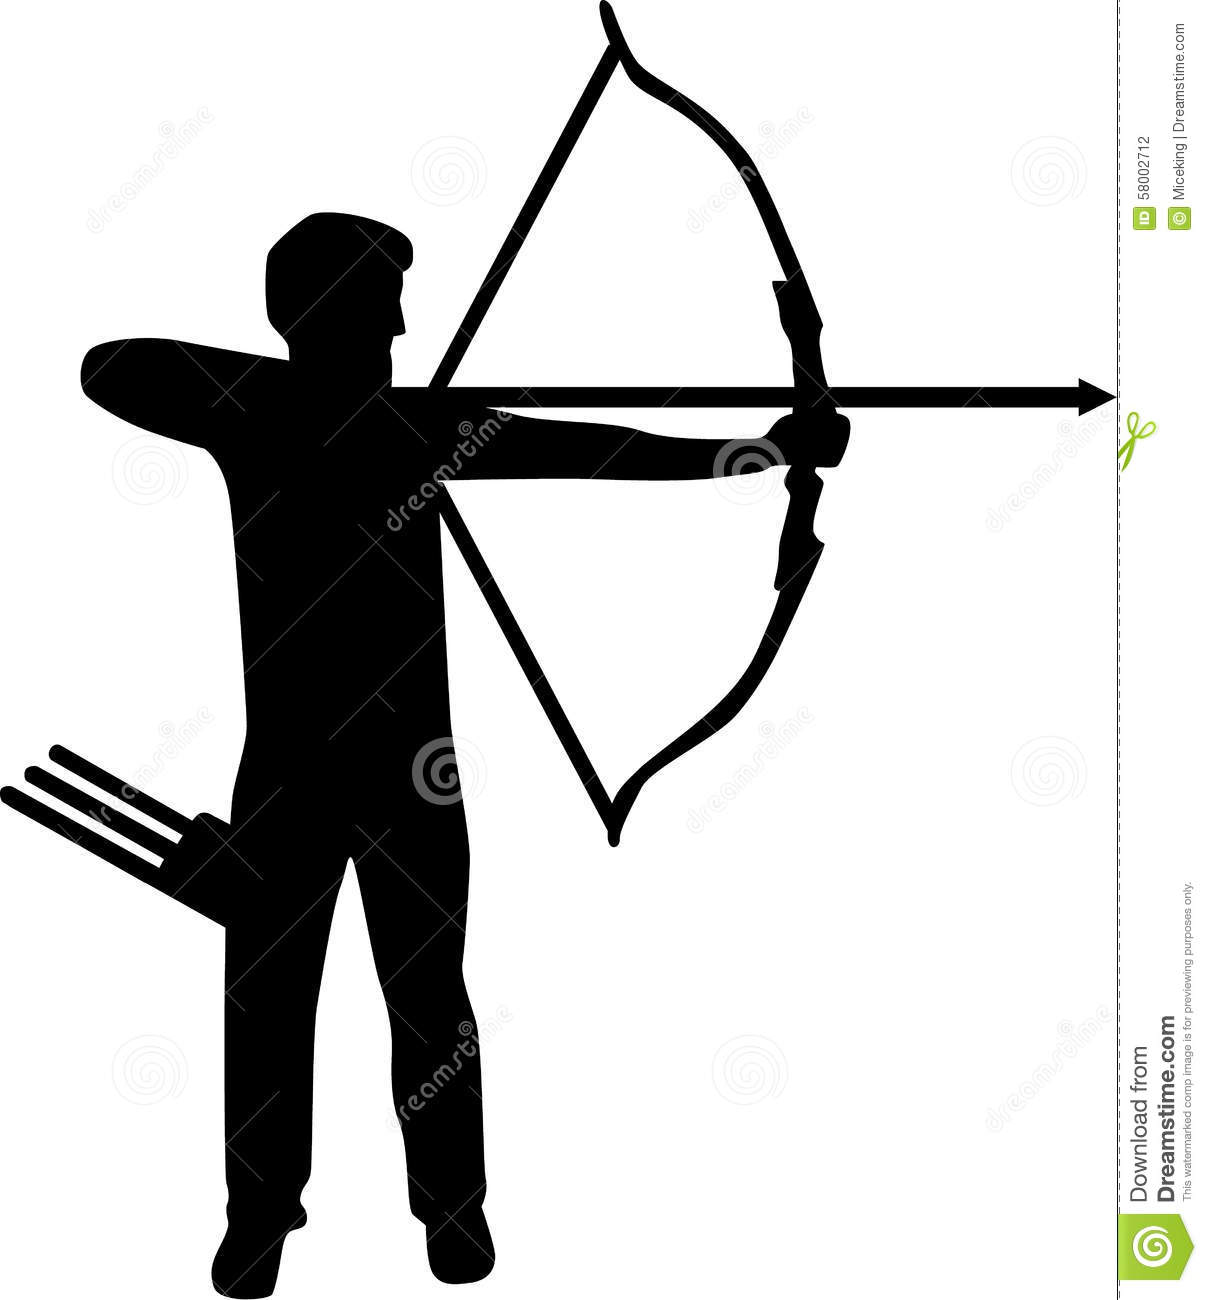 Real Archer Silhouette shooting with bow and arrow.